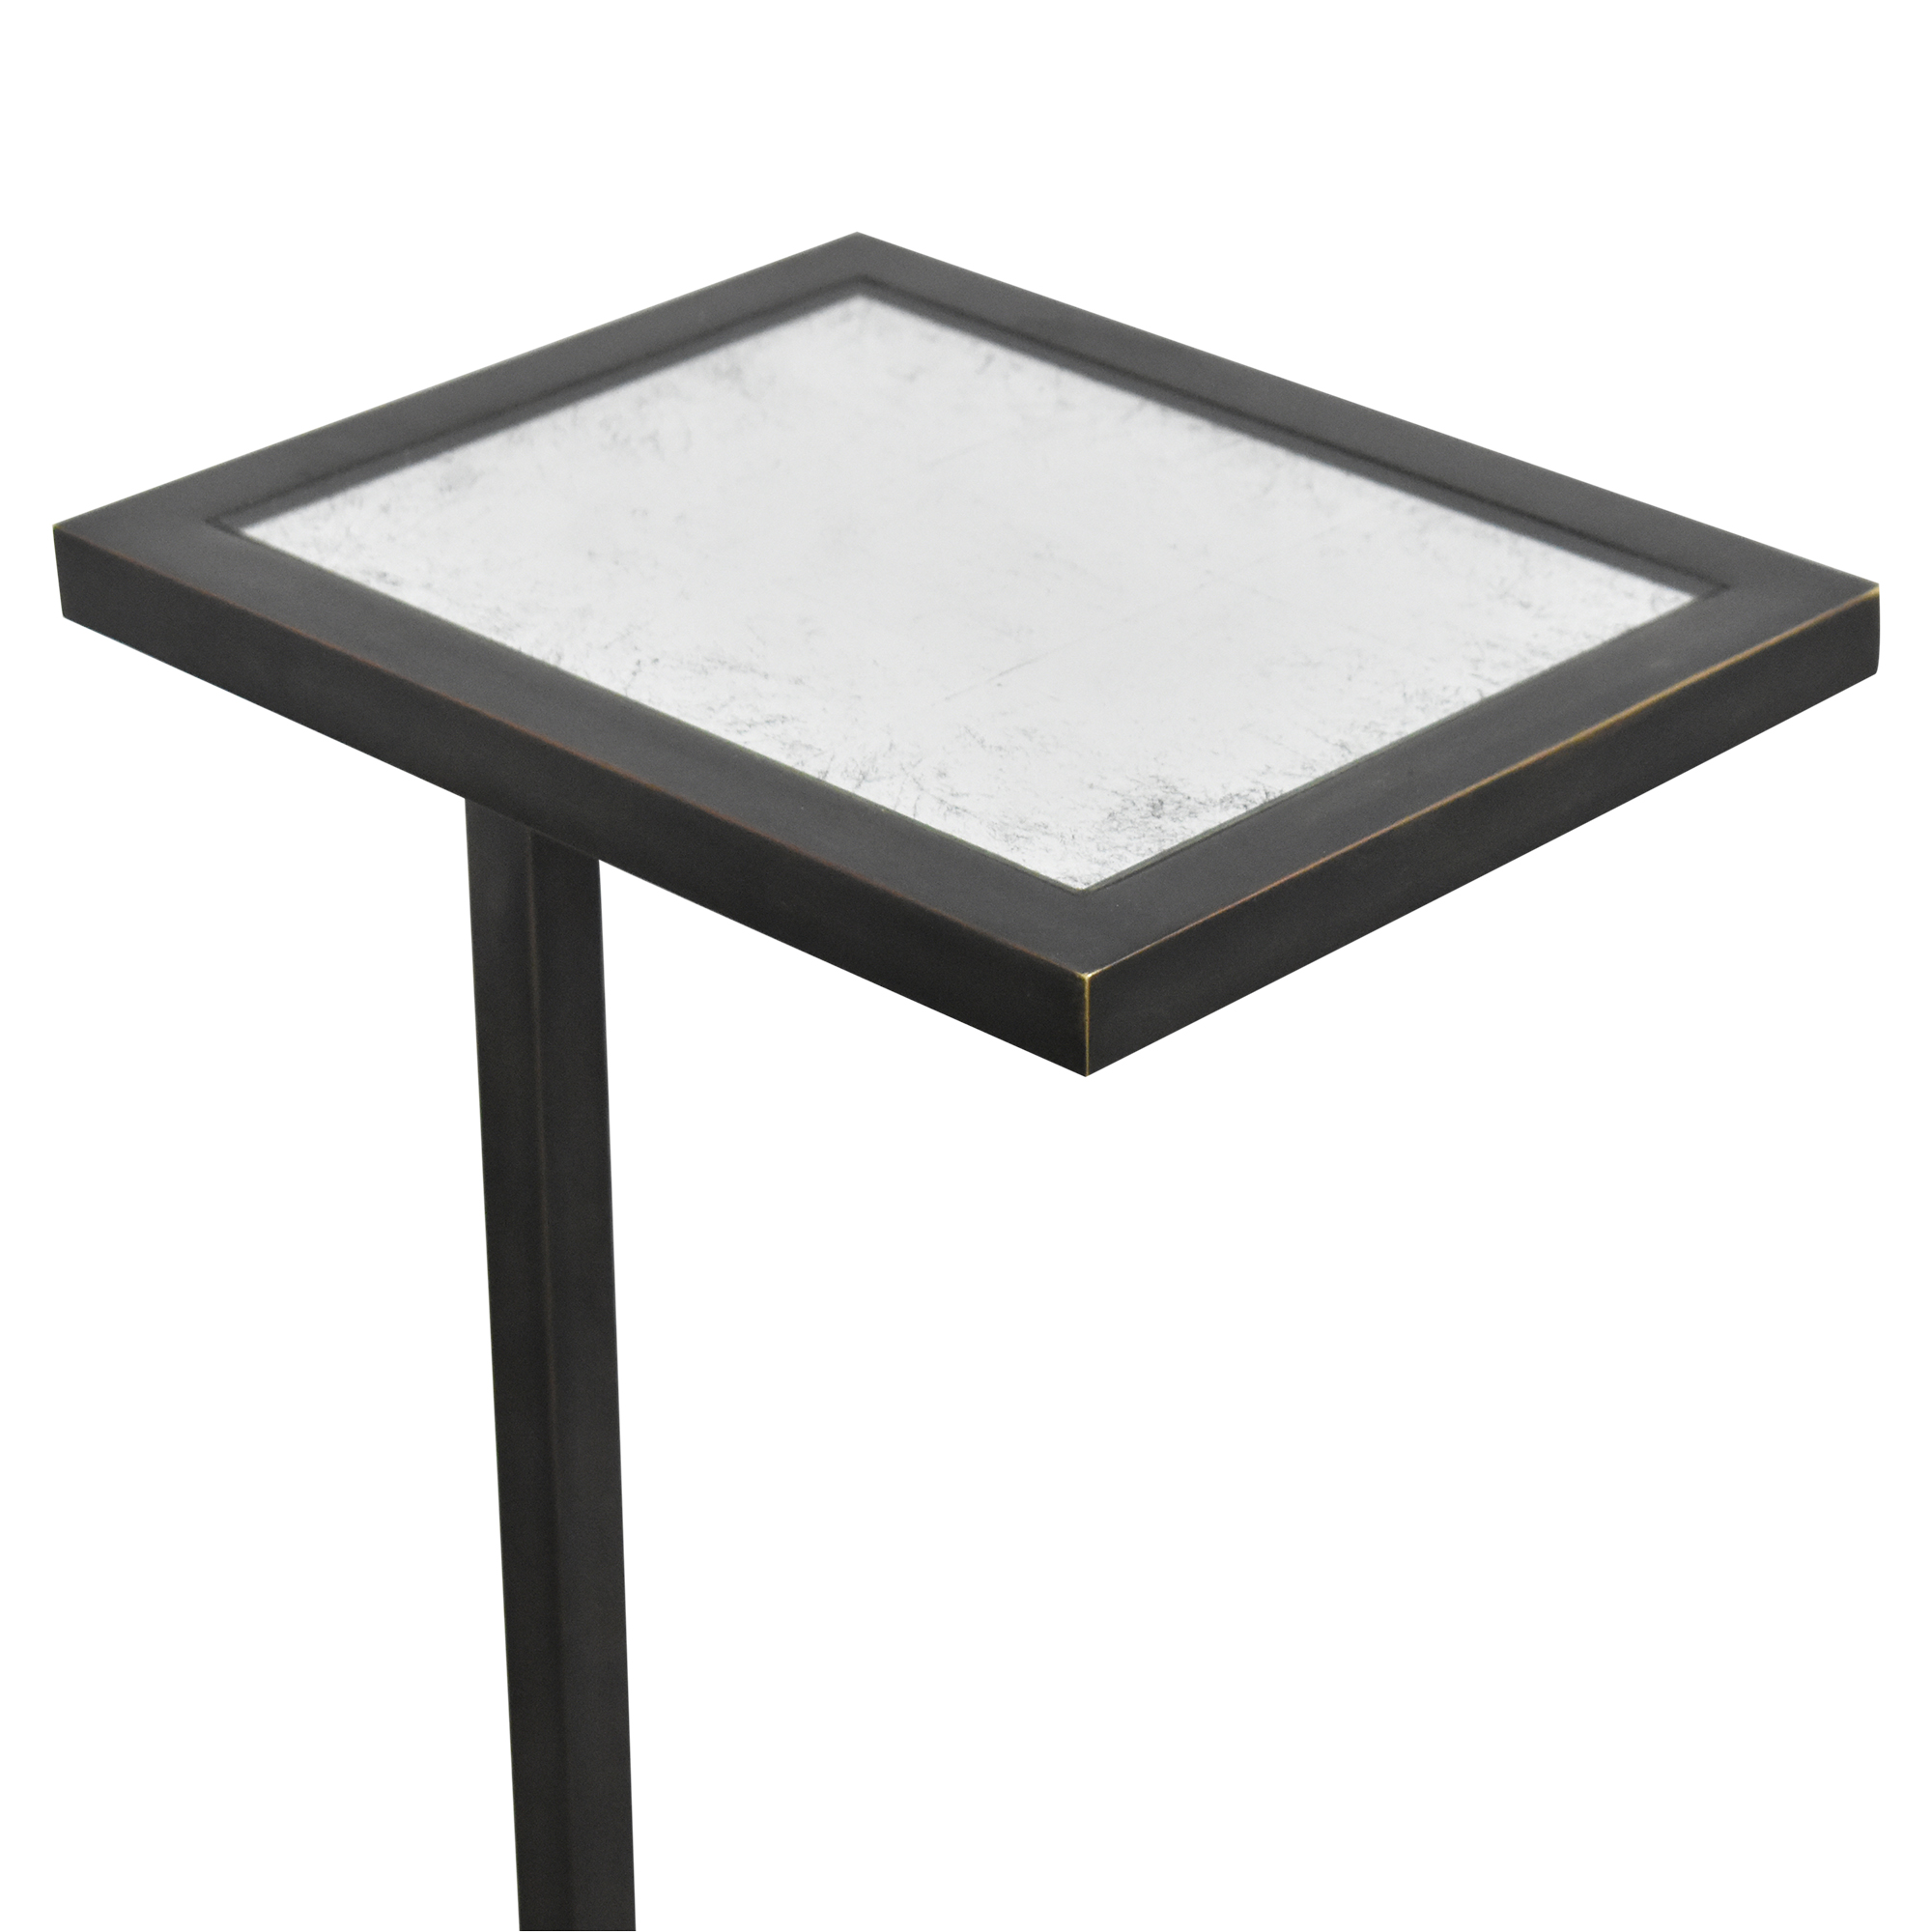 Restoration Hardware Restoration Hardware Crosby Side Table used